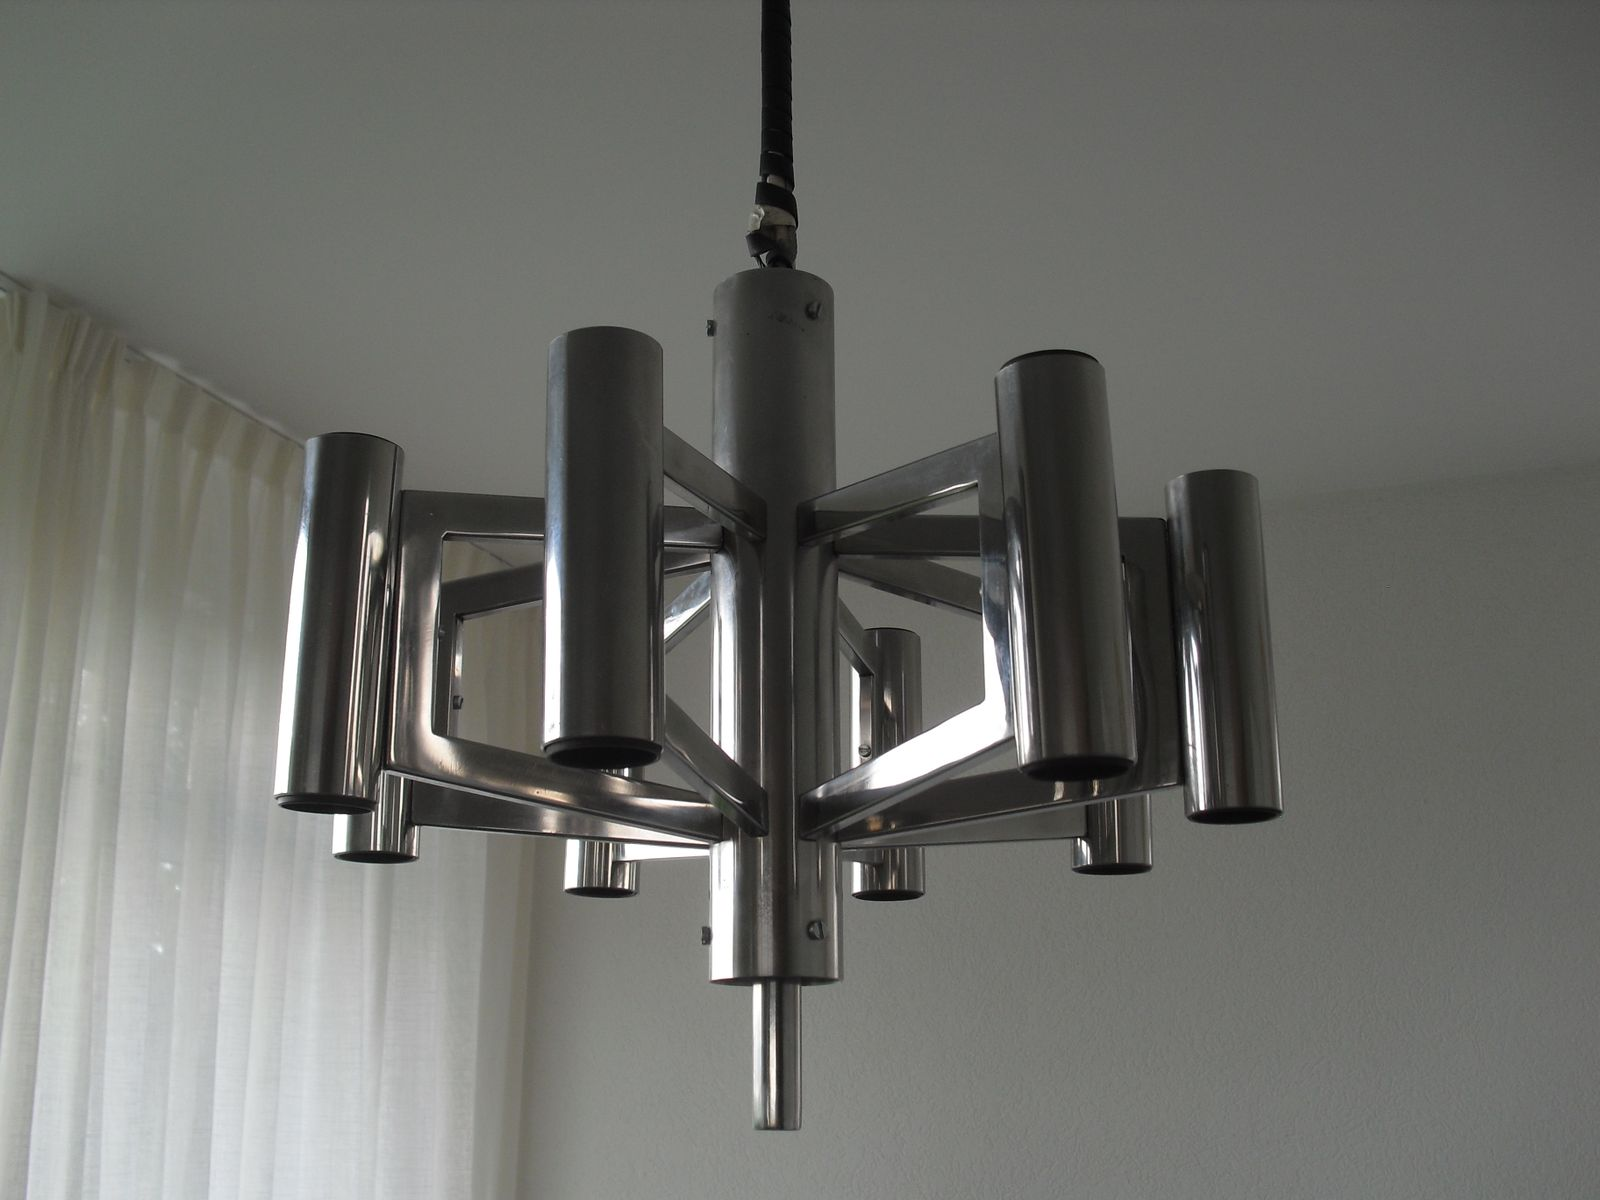 midcentury chrome chandelier s for sale at pamono - midcentury chrome chandelier s